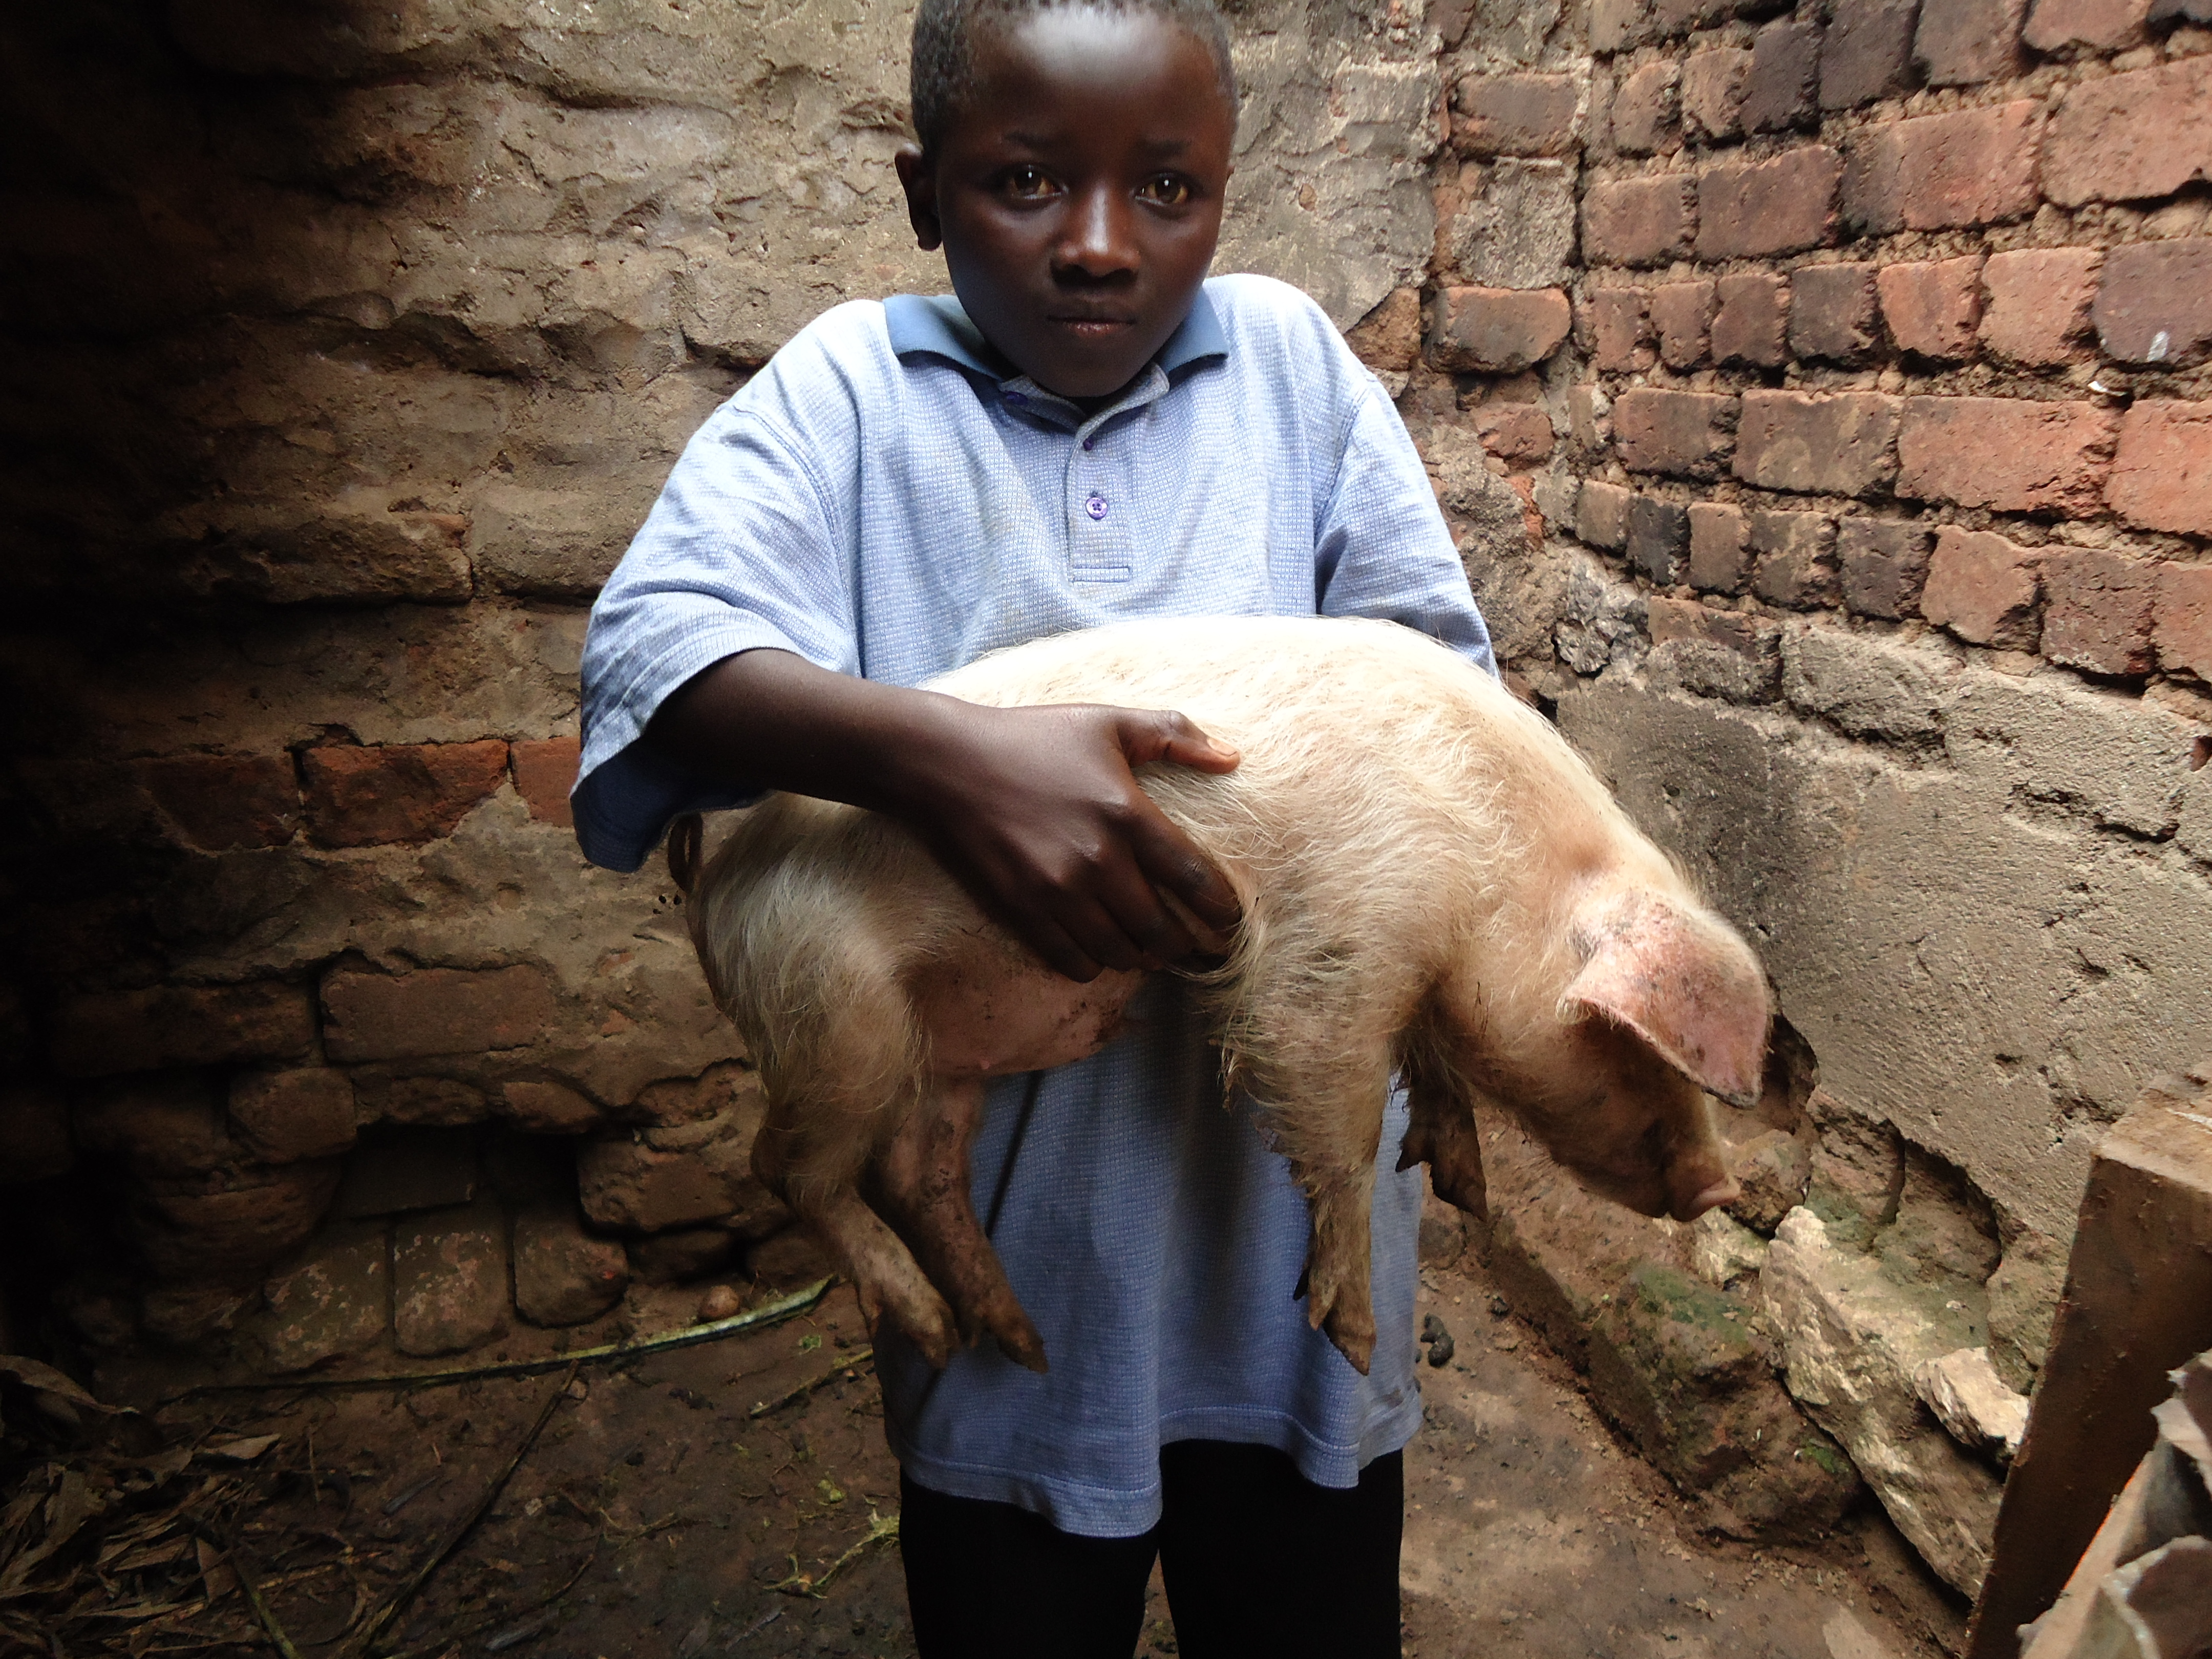 A rescued child soldier holds a pig